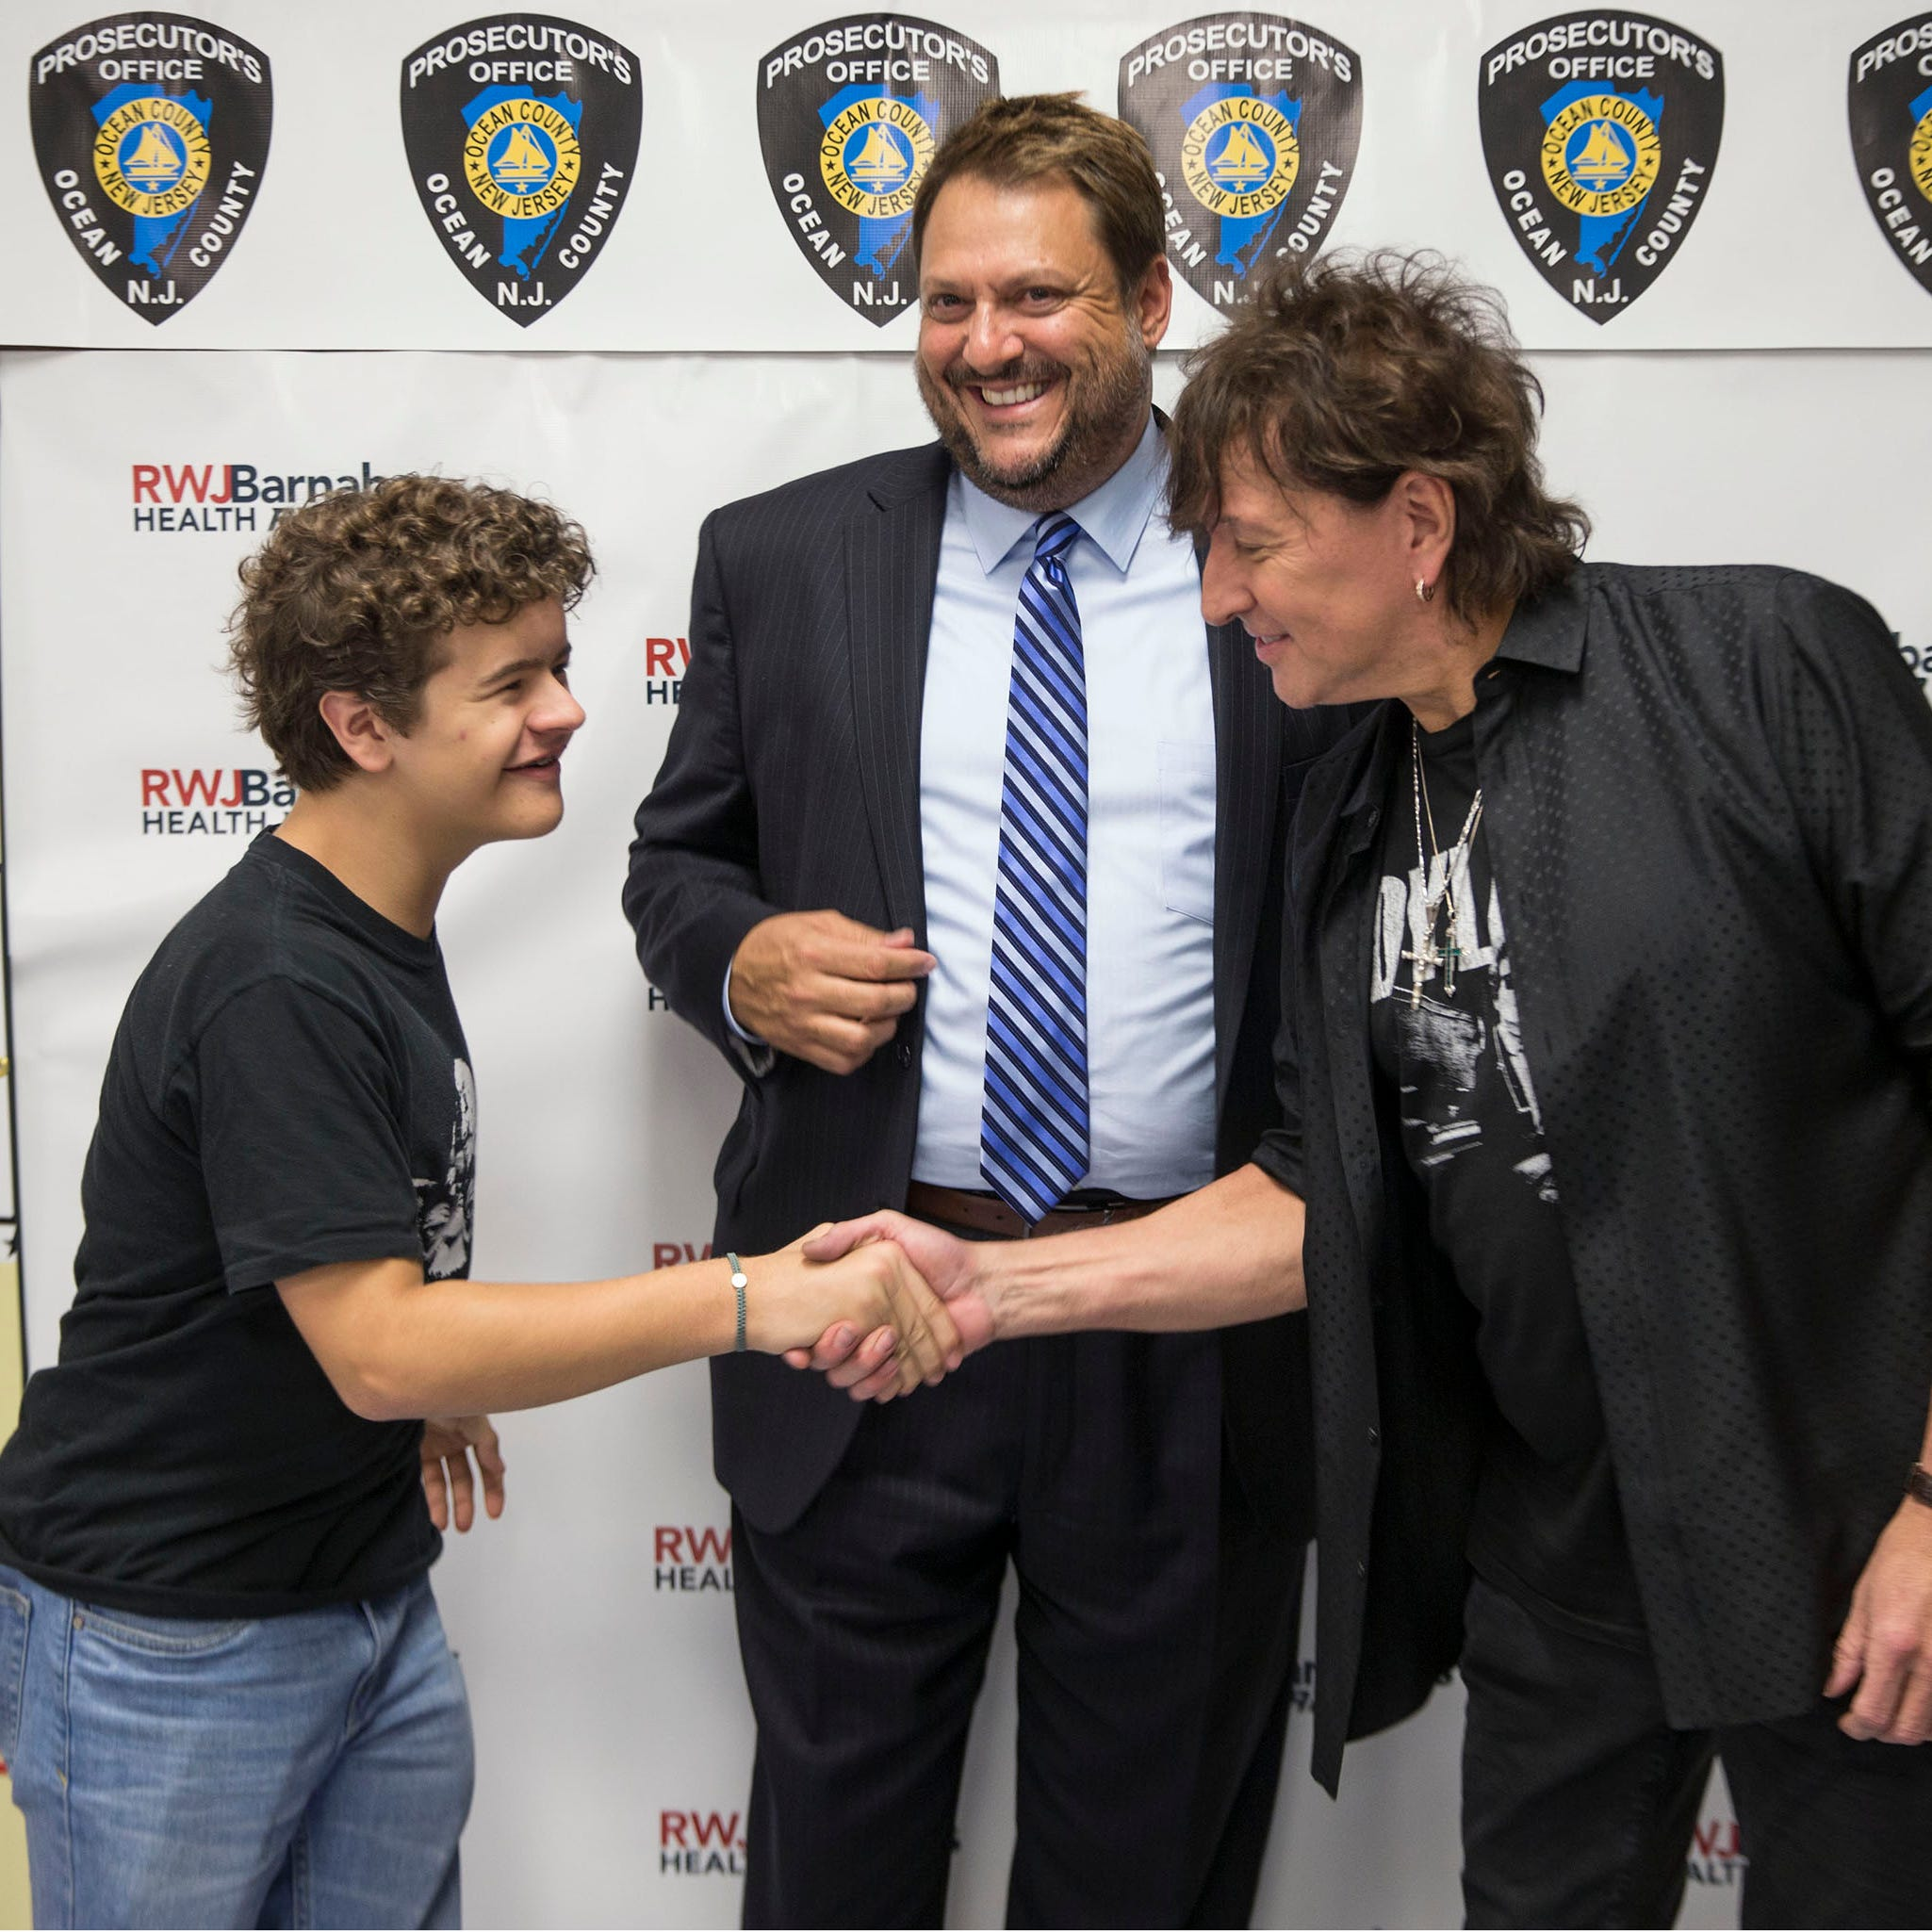 Actor Gaten Matarazzo and Prosecutor Brad Billhimer with Richie Sambora. The Ocean County Prosecutor's Office presents Unbreakable, A Forum Against Bullying to bring attention to a problem experienced by many children. The show performed at RWJ Barnabas Health Arena included musician Richie Sambora, baseball player Todd Frazier, and actor Gaten Matarazzo among others.Toms River, NJThursday, November, 15, 2018